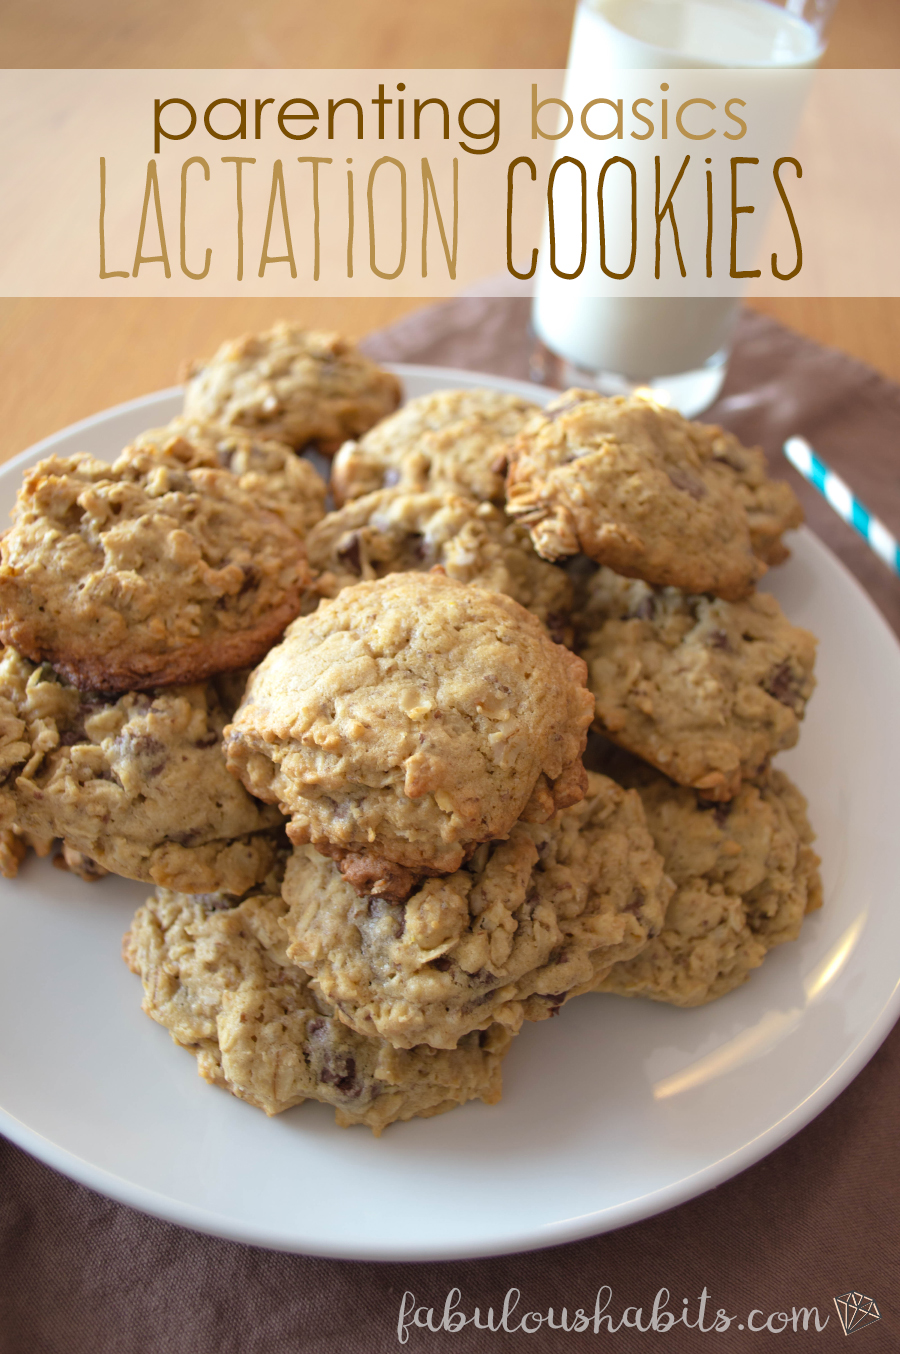 Lactation cookies that are delicious AND effective? Nursing win-win!